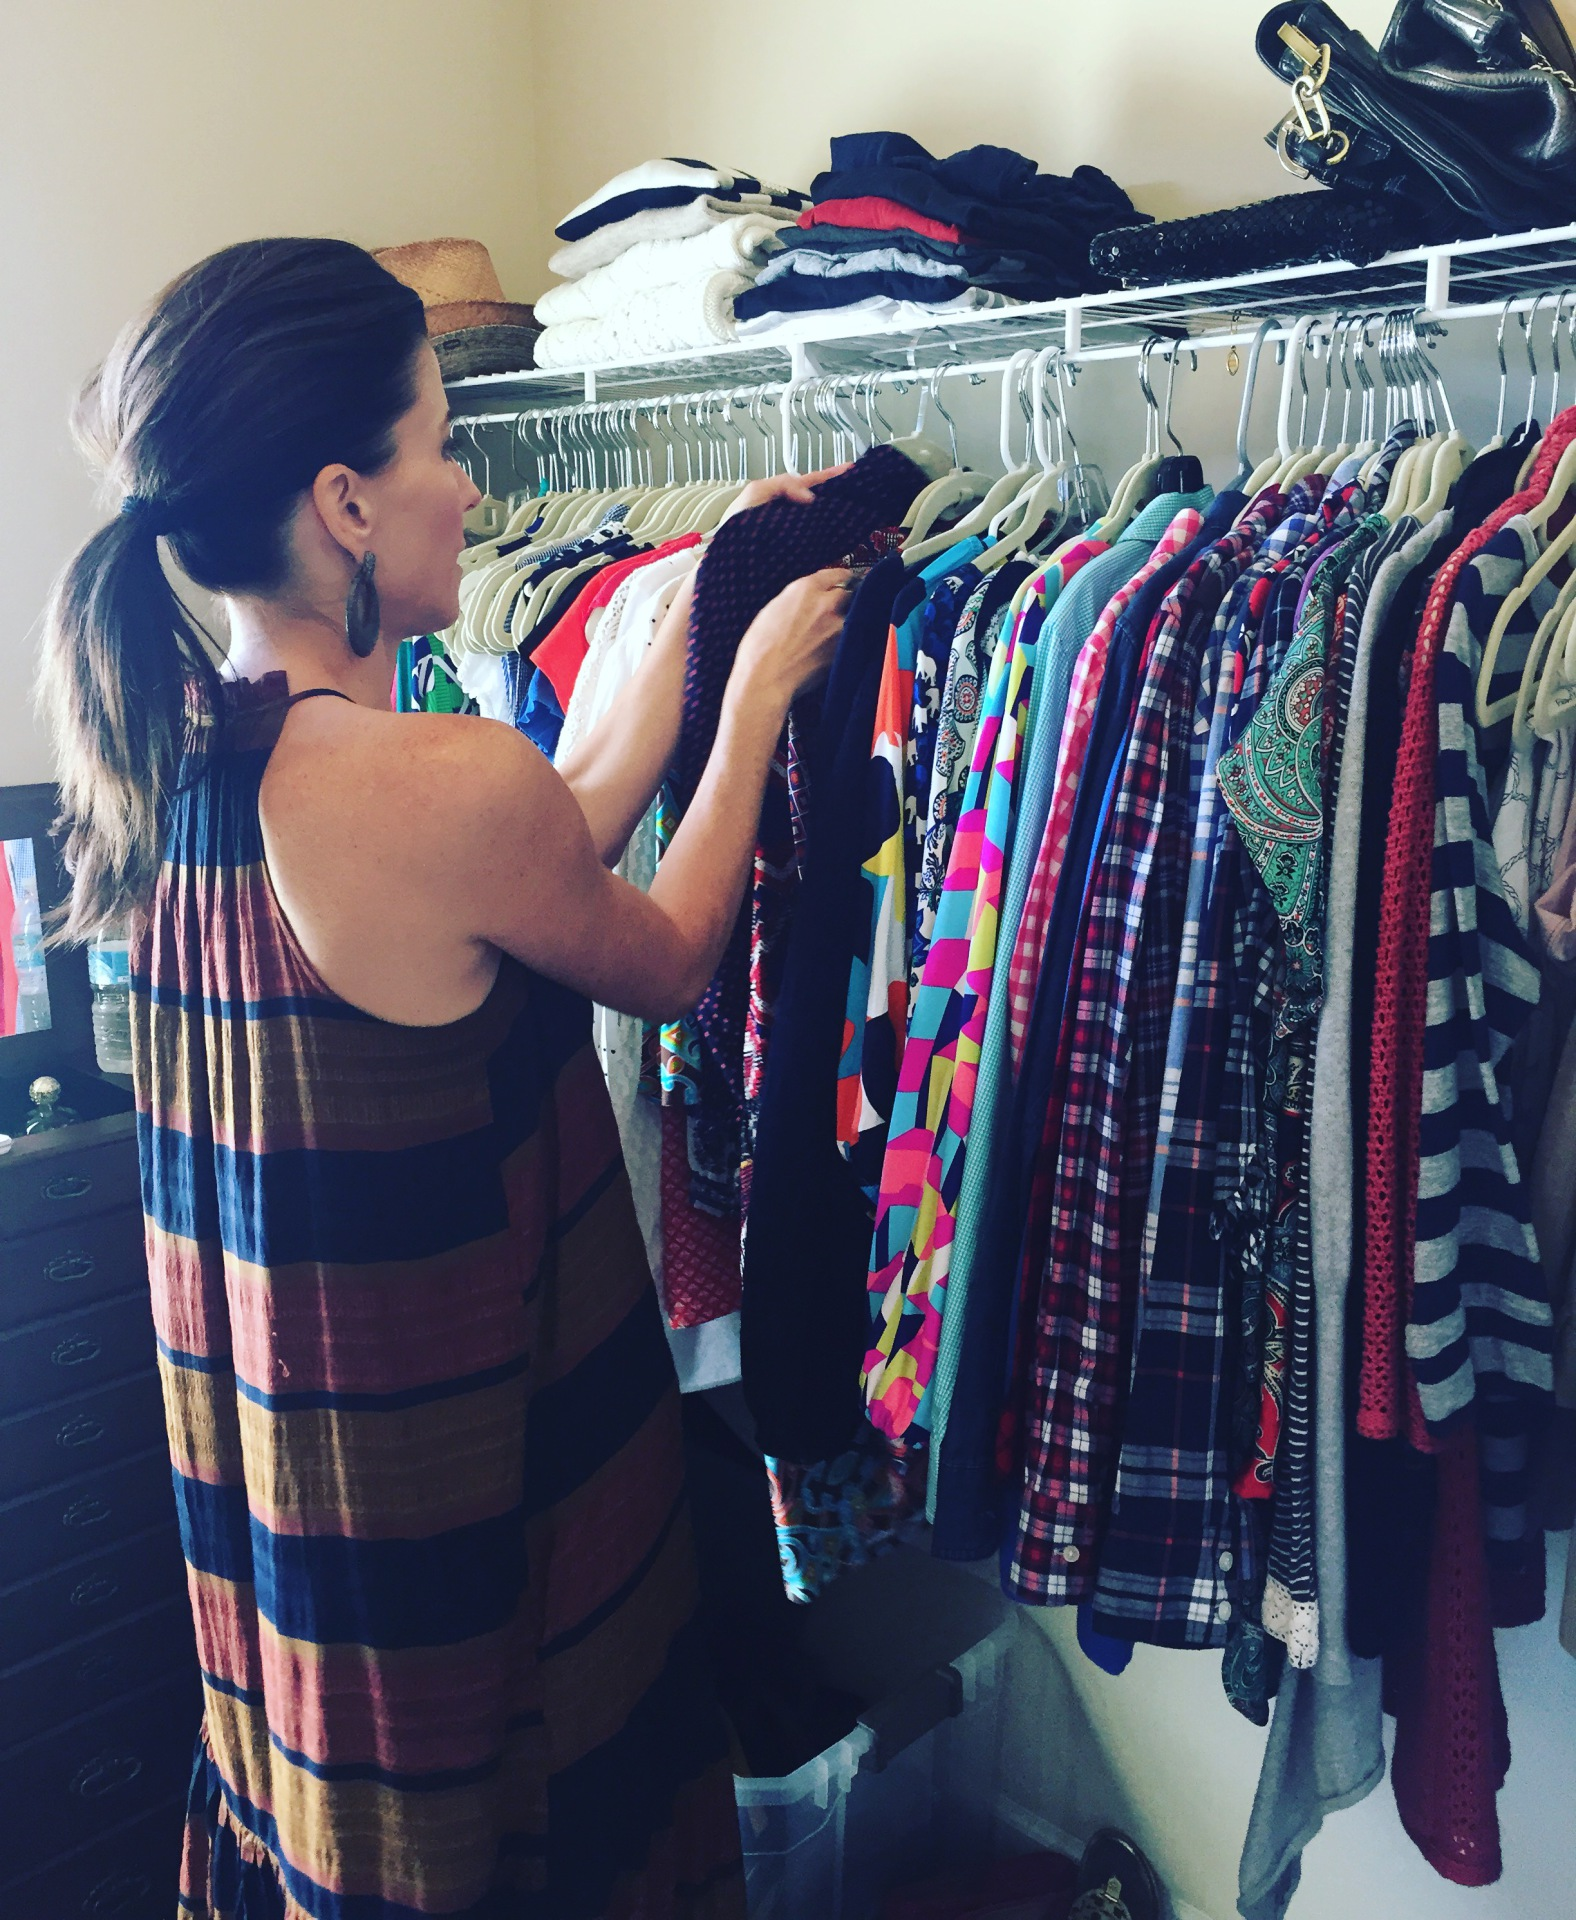 BEHIND THE SCENES OF A CLOSET EDITOR